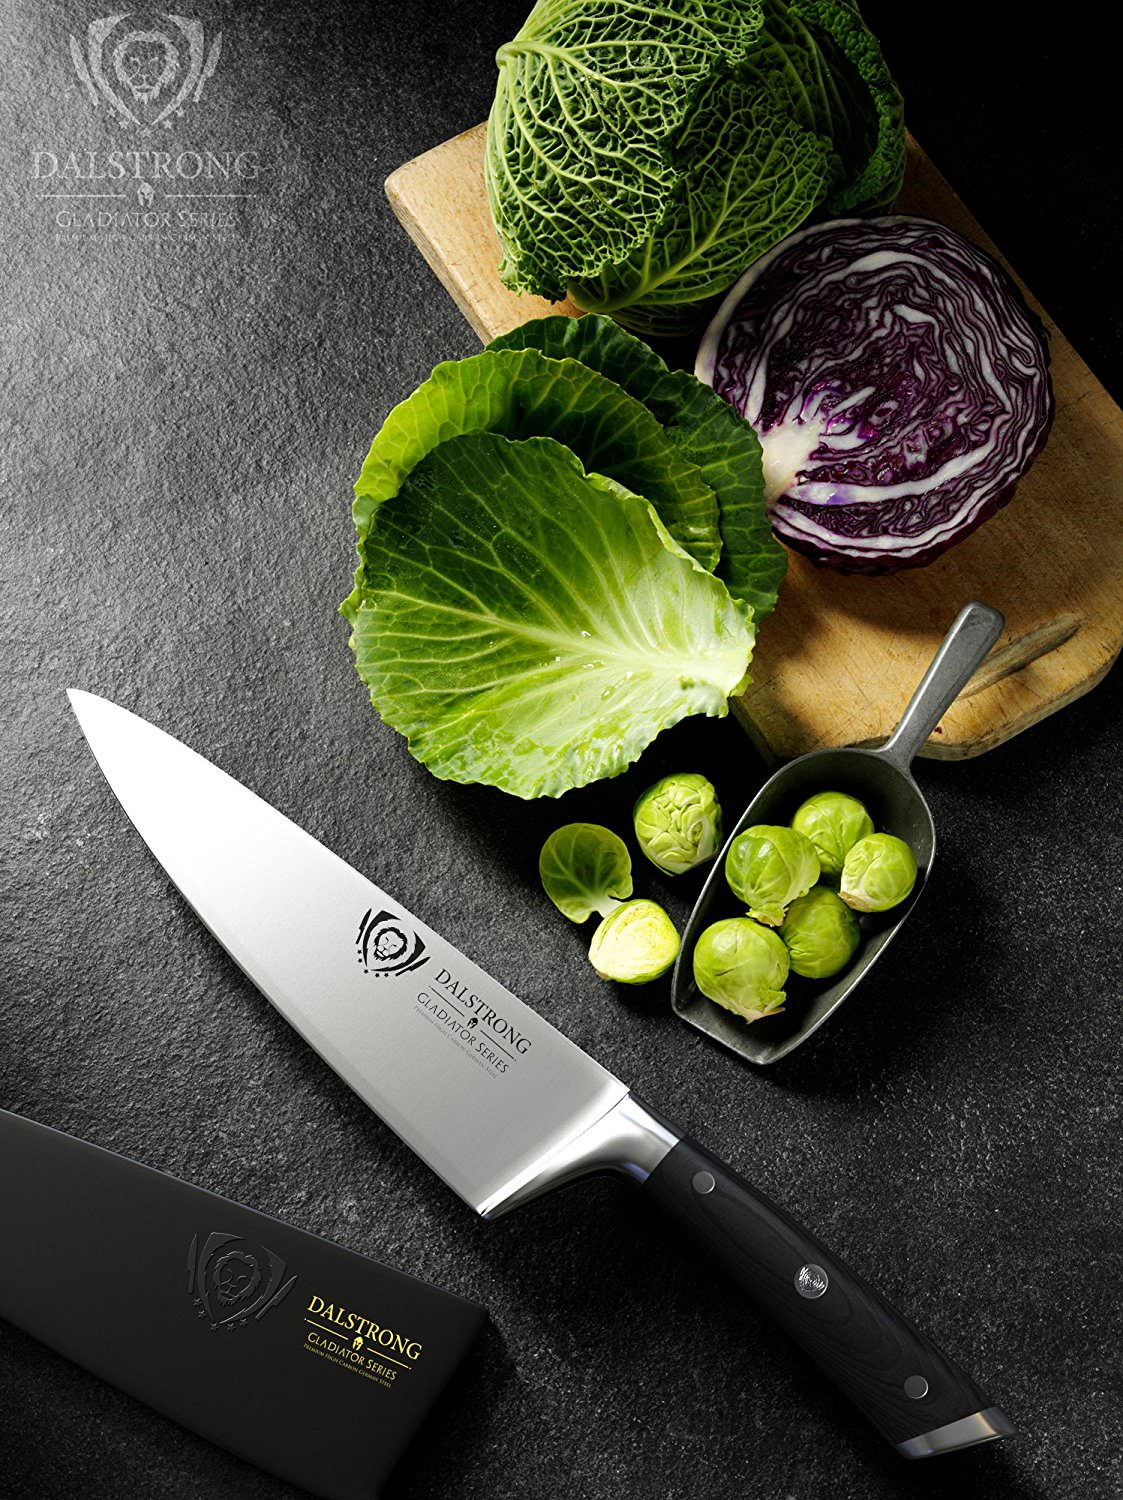 Dalstrong Gladiator 8 Chef Knives123